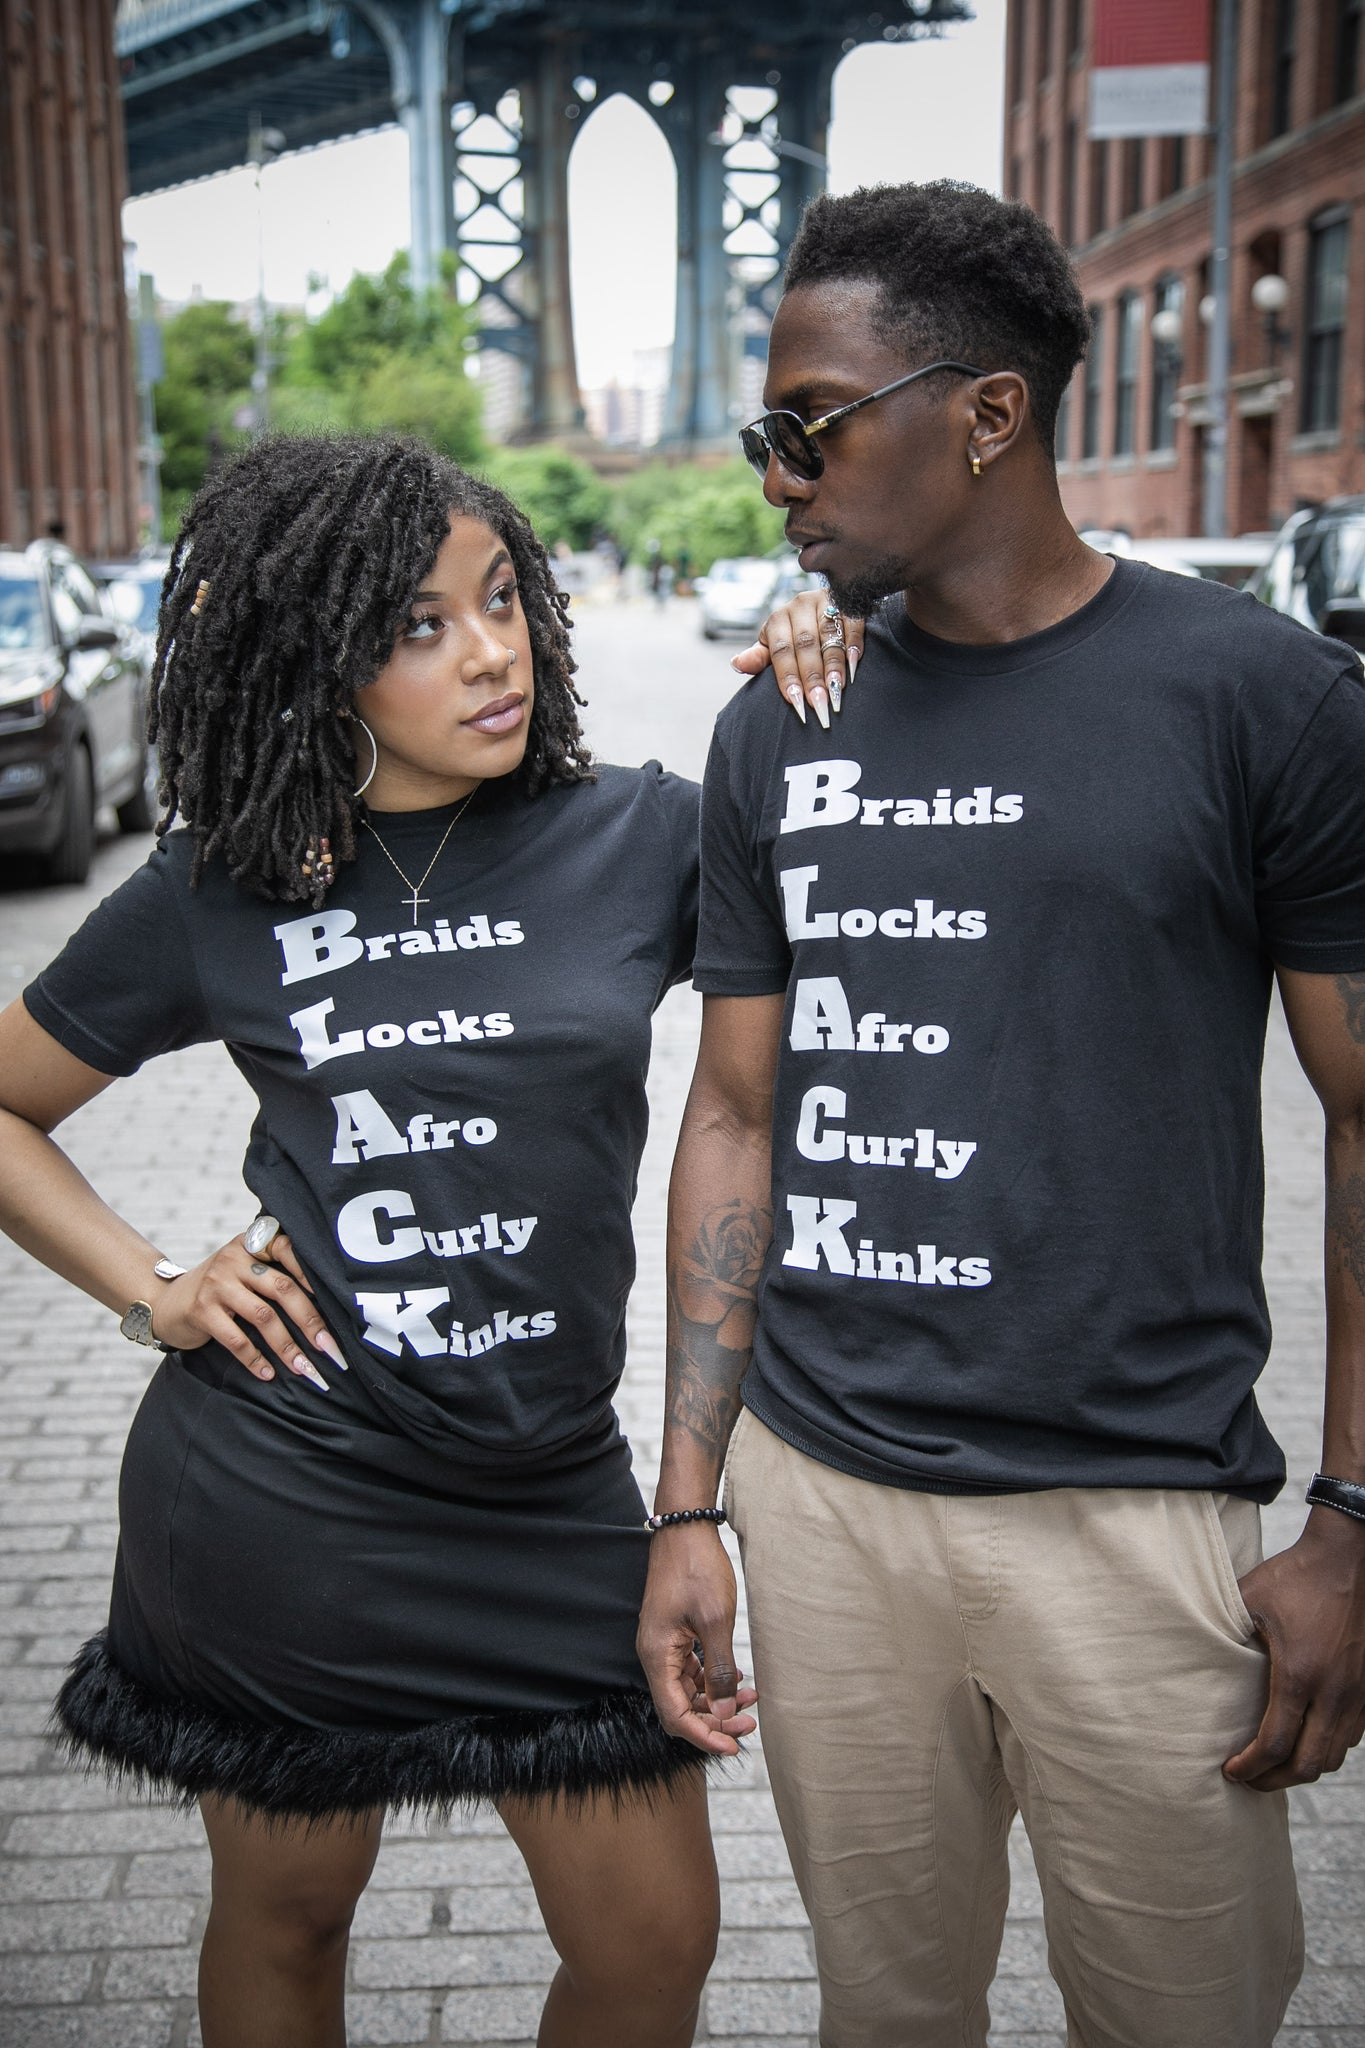 Black Hair History Unisex T-Shirt, Black Hair T-Shirt